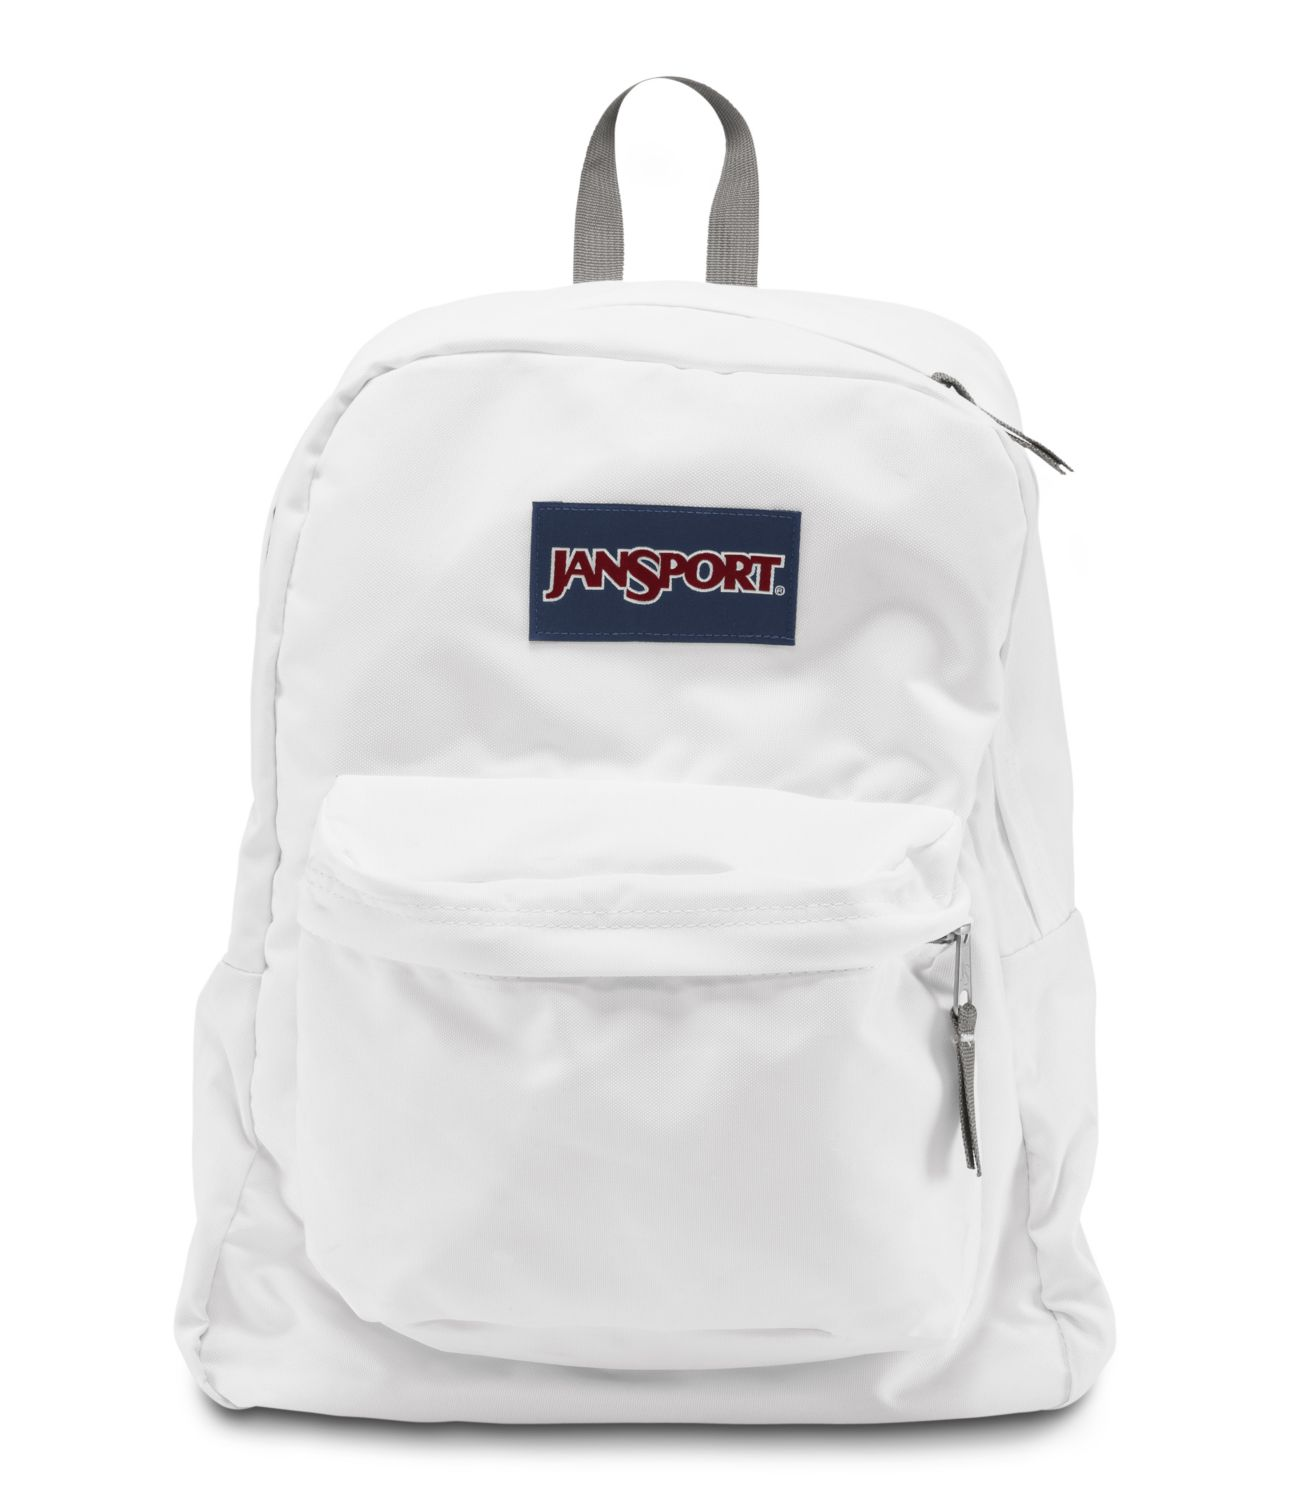 Jansport Superbreak School Backpack White Fantasyard